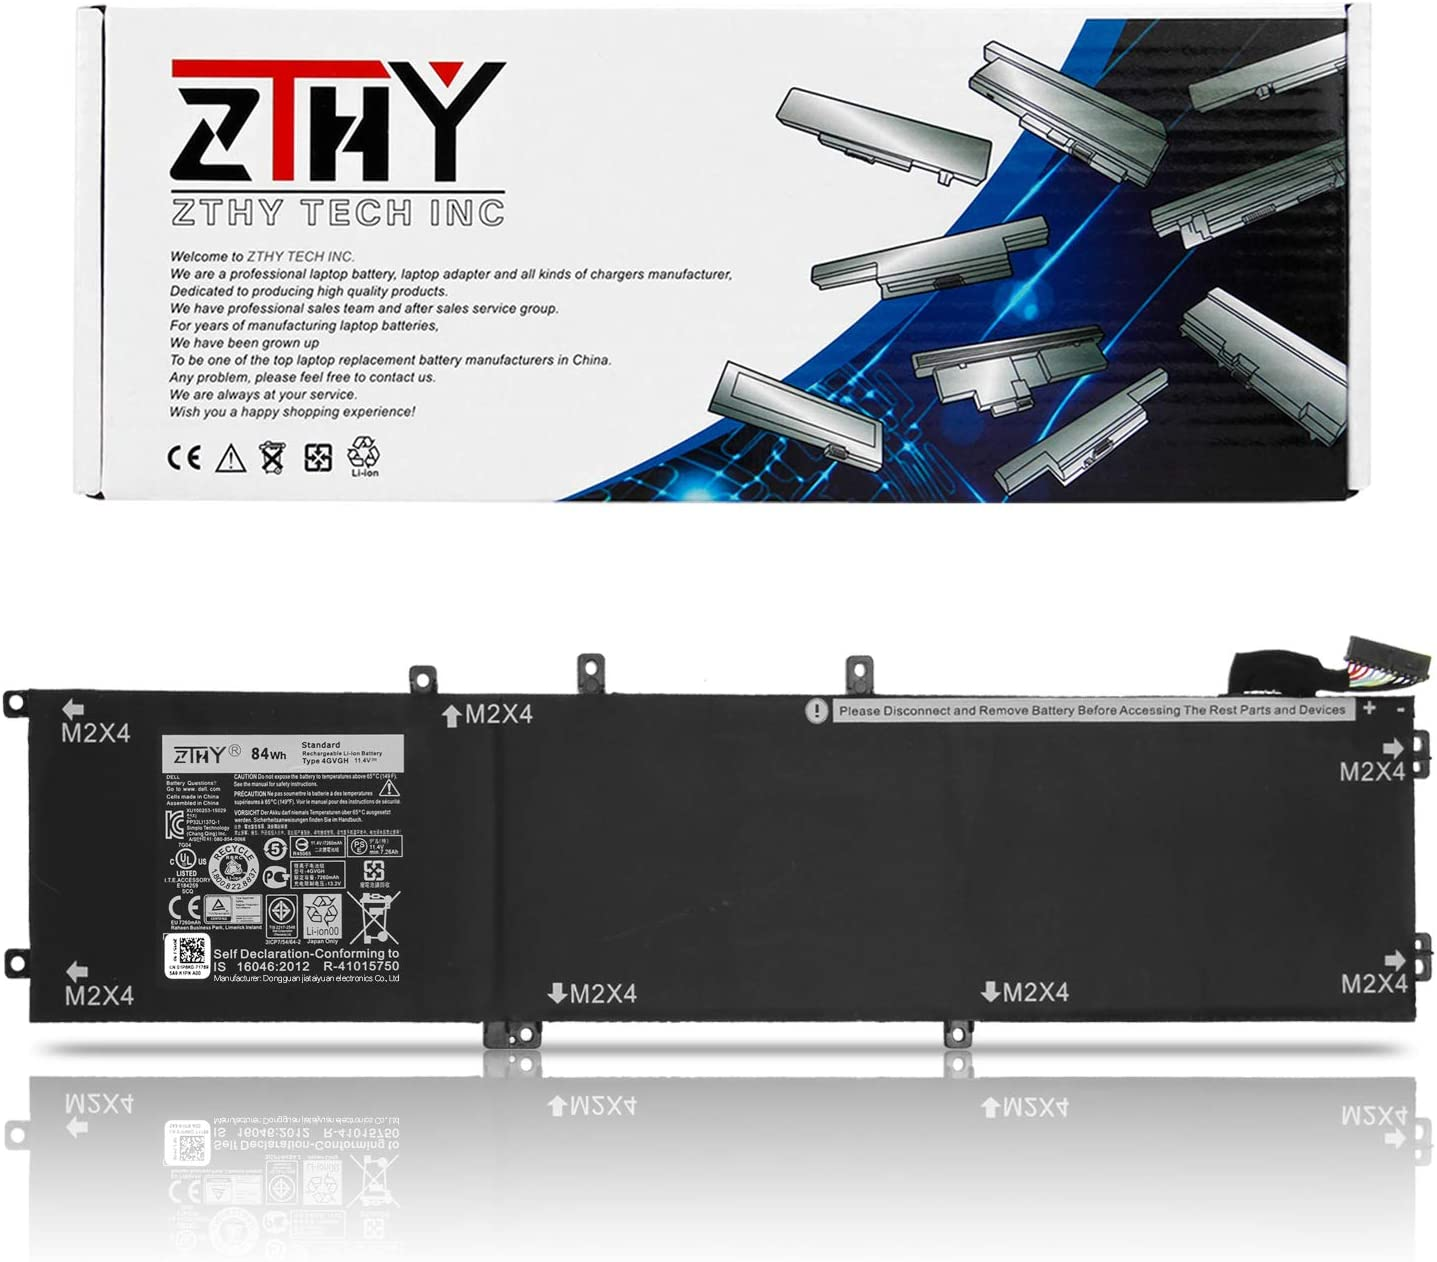 ZTHY 84Wh 4GVGH Laptop Battery Compatible with Dell XPS 15 9550 P56F P56F001 Dell Precision 5510 Mobile Workstation Series Replacement 1P6KD T453X 0T453 062MJV M7R96 451-BBUX 6Cell 7260mAh 11.4V